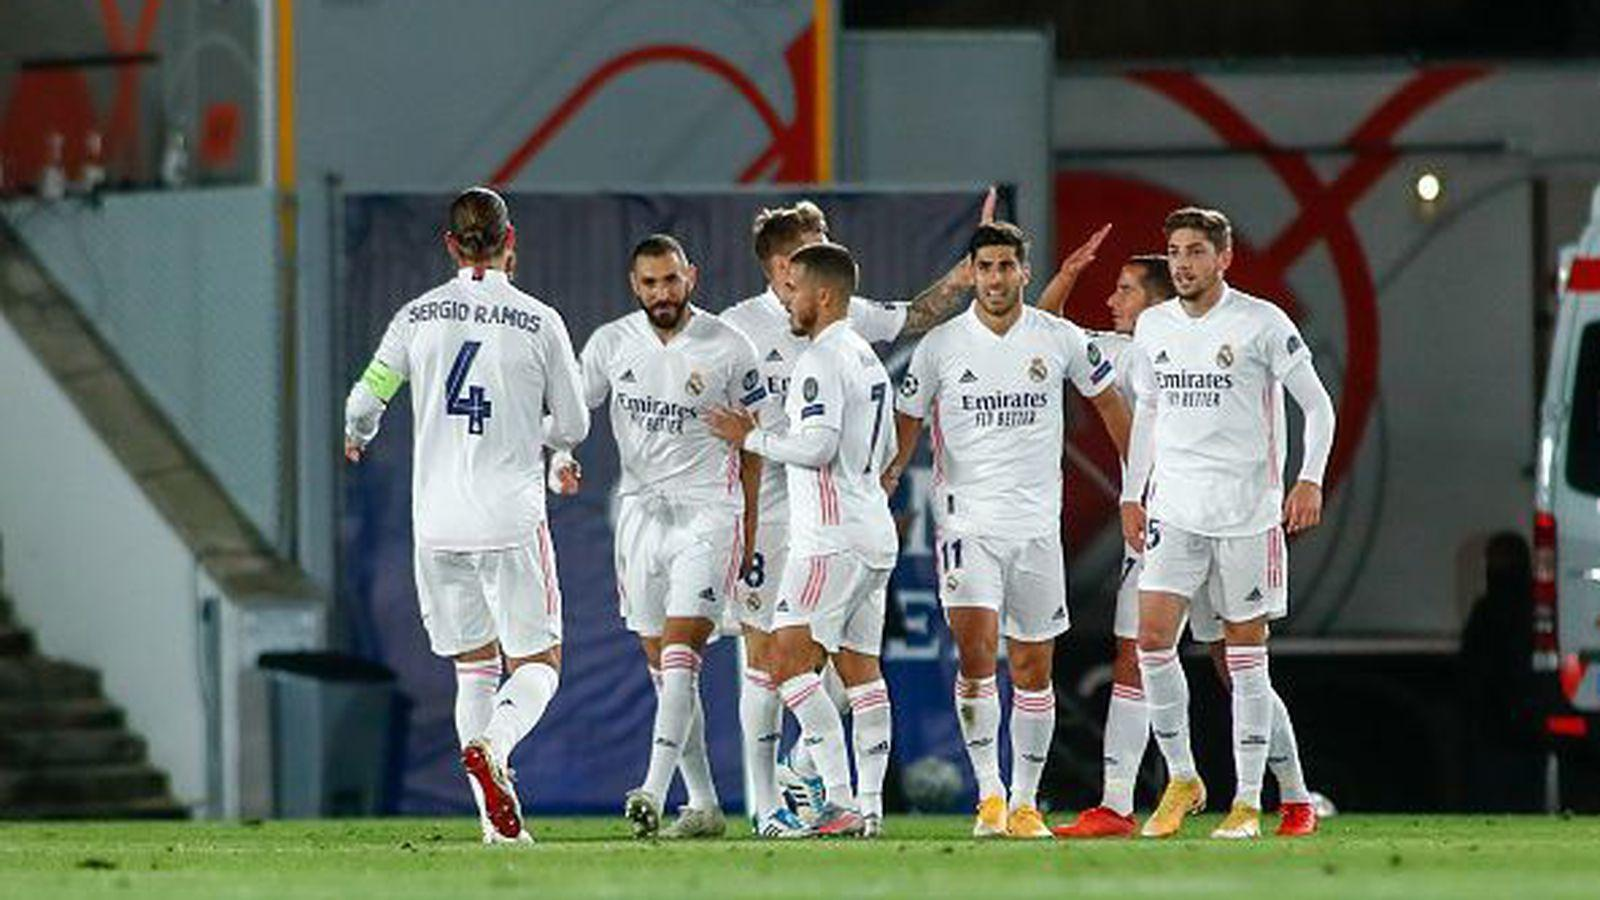 real-madrid-vs-inter-milan-player-ratings